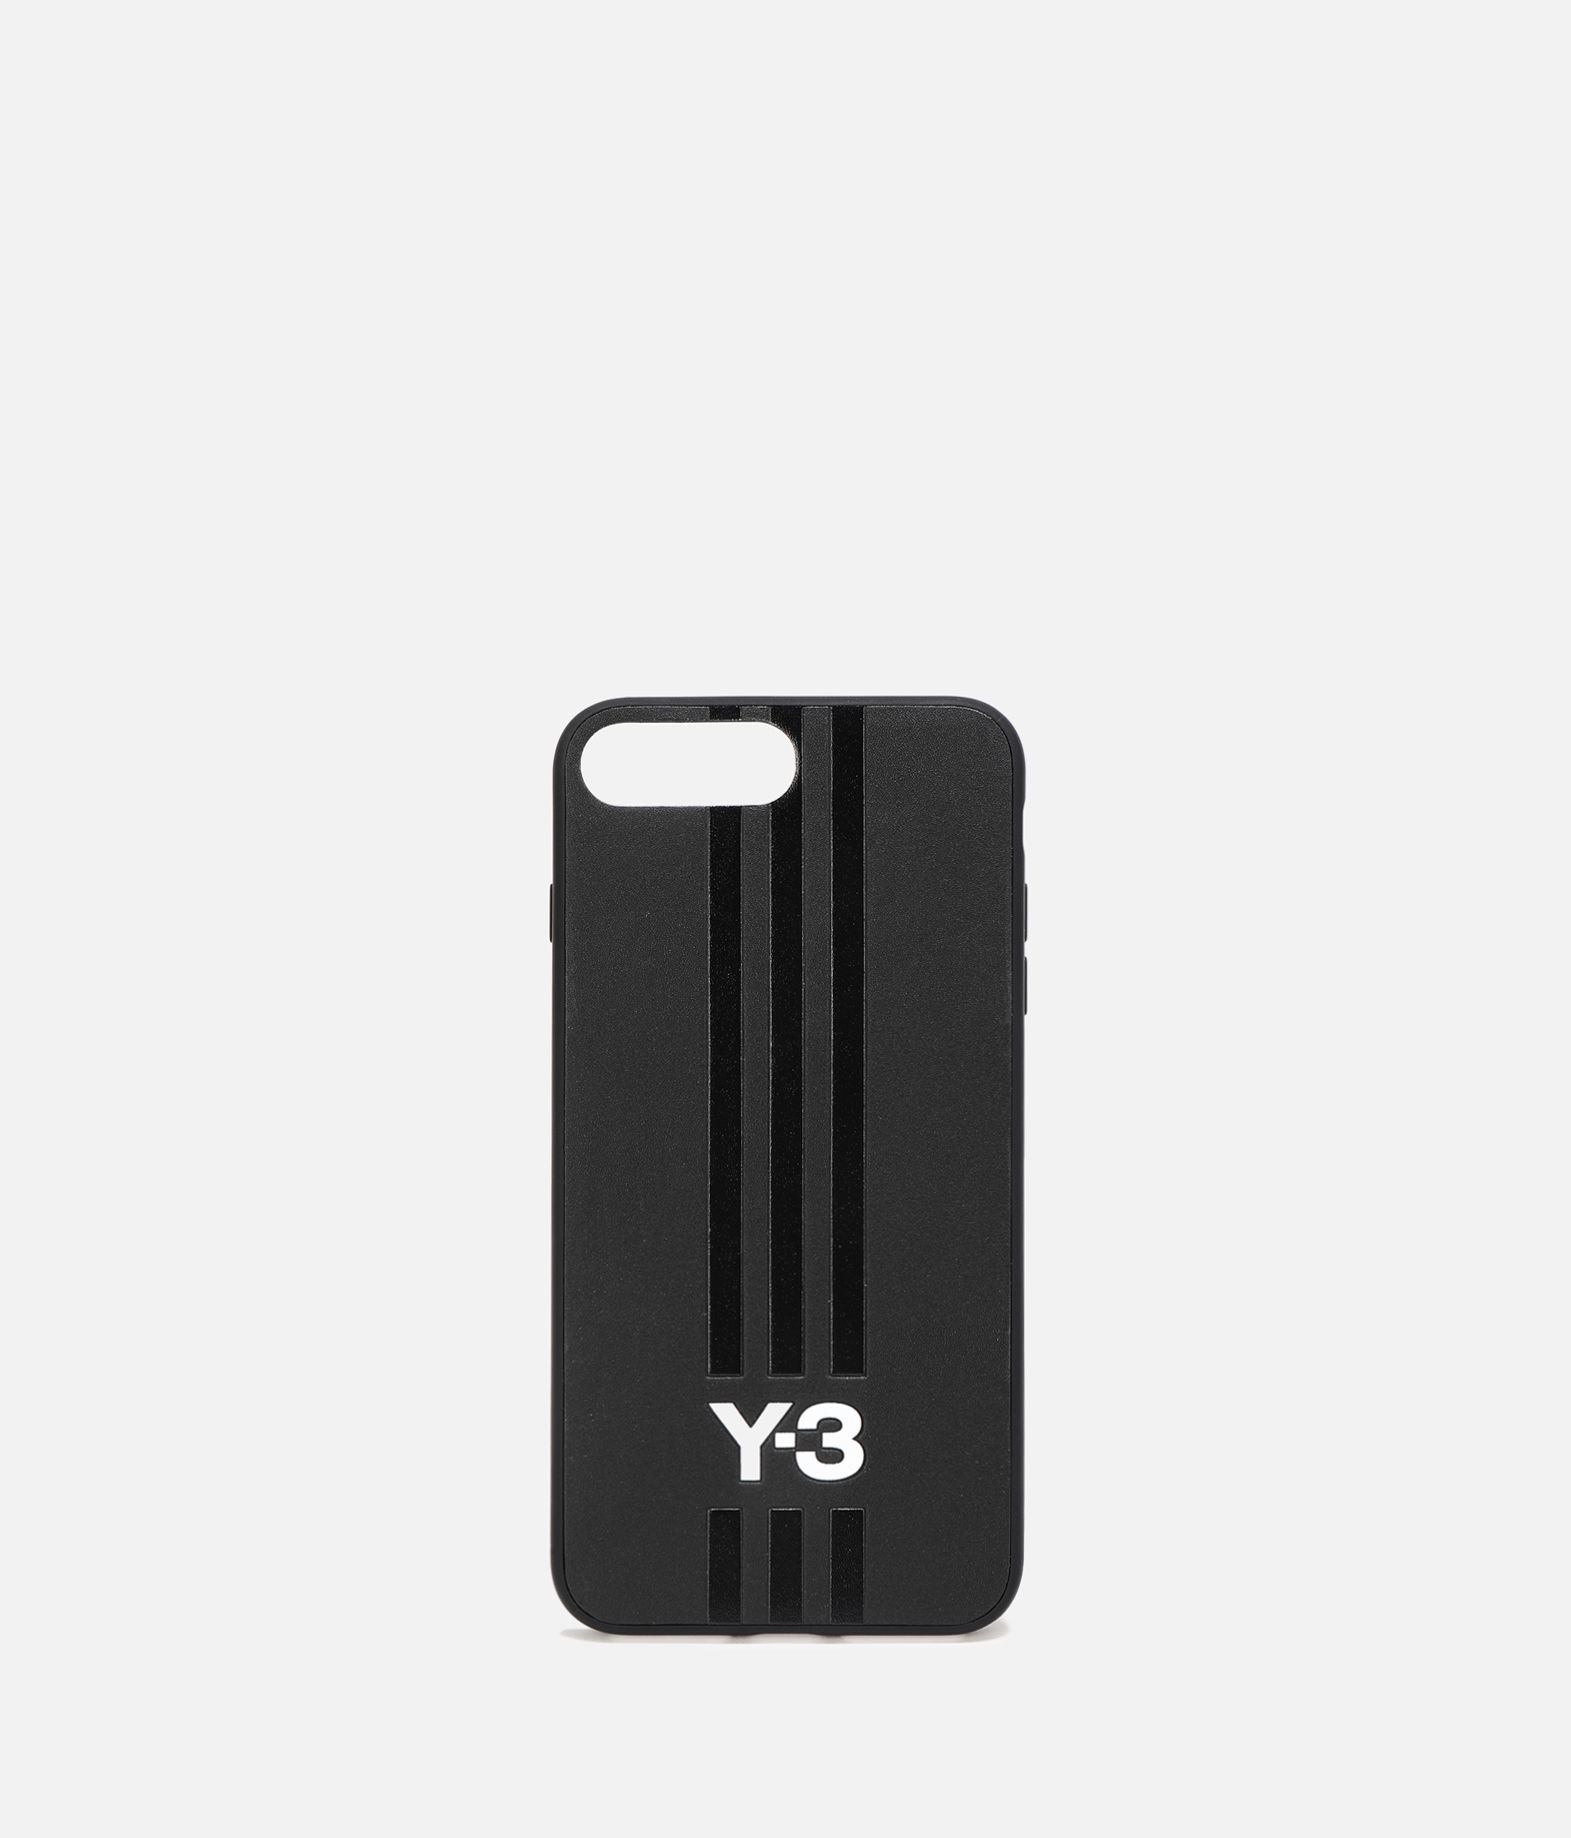 Y-3 Y-3 Moulded Case Leather iPhone 6+/6s+/7+/8+ Phone case E f